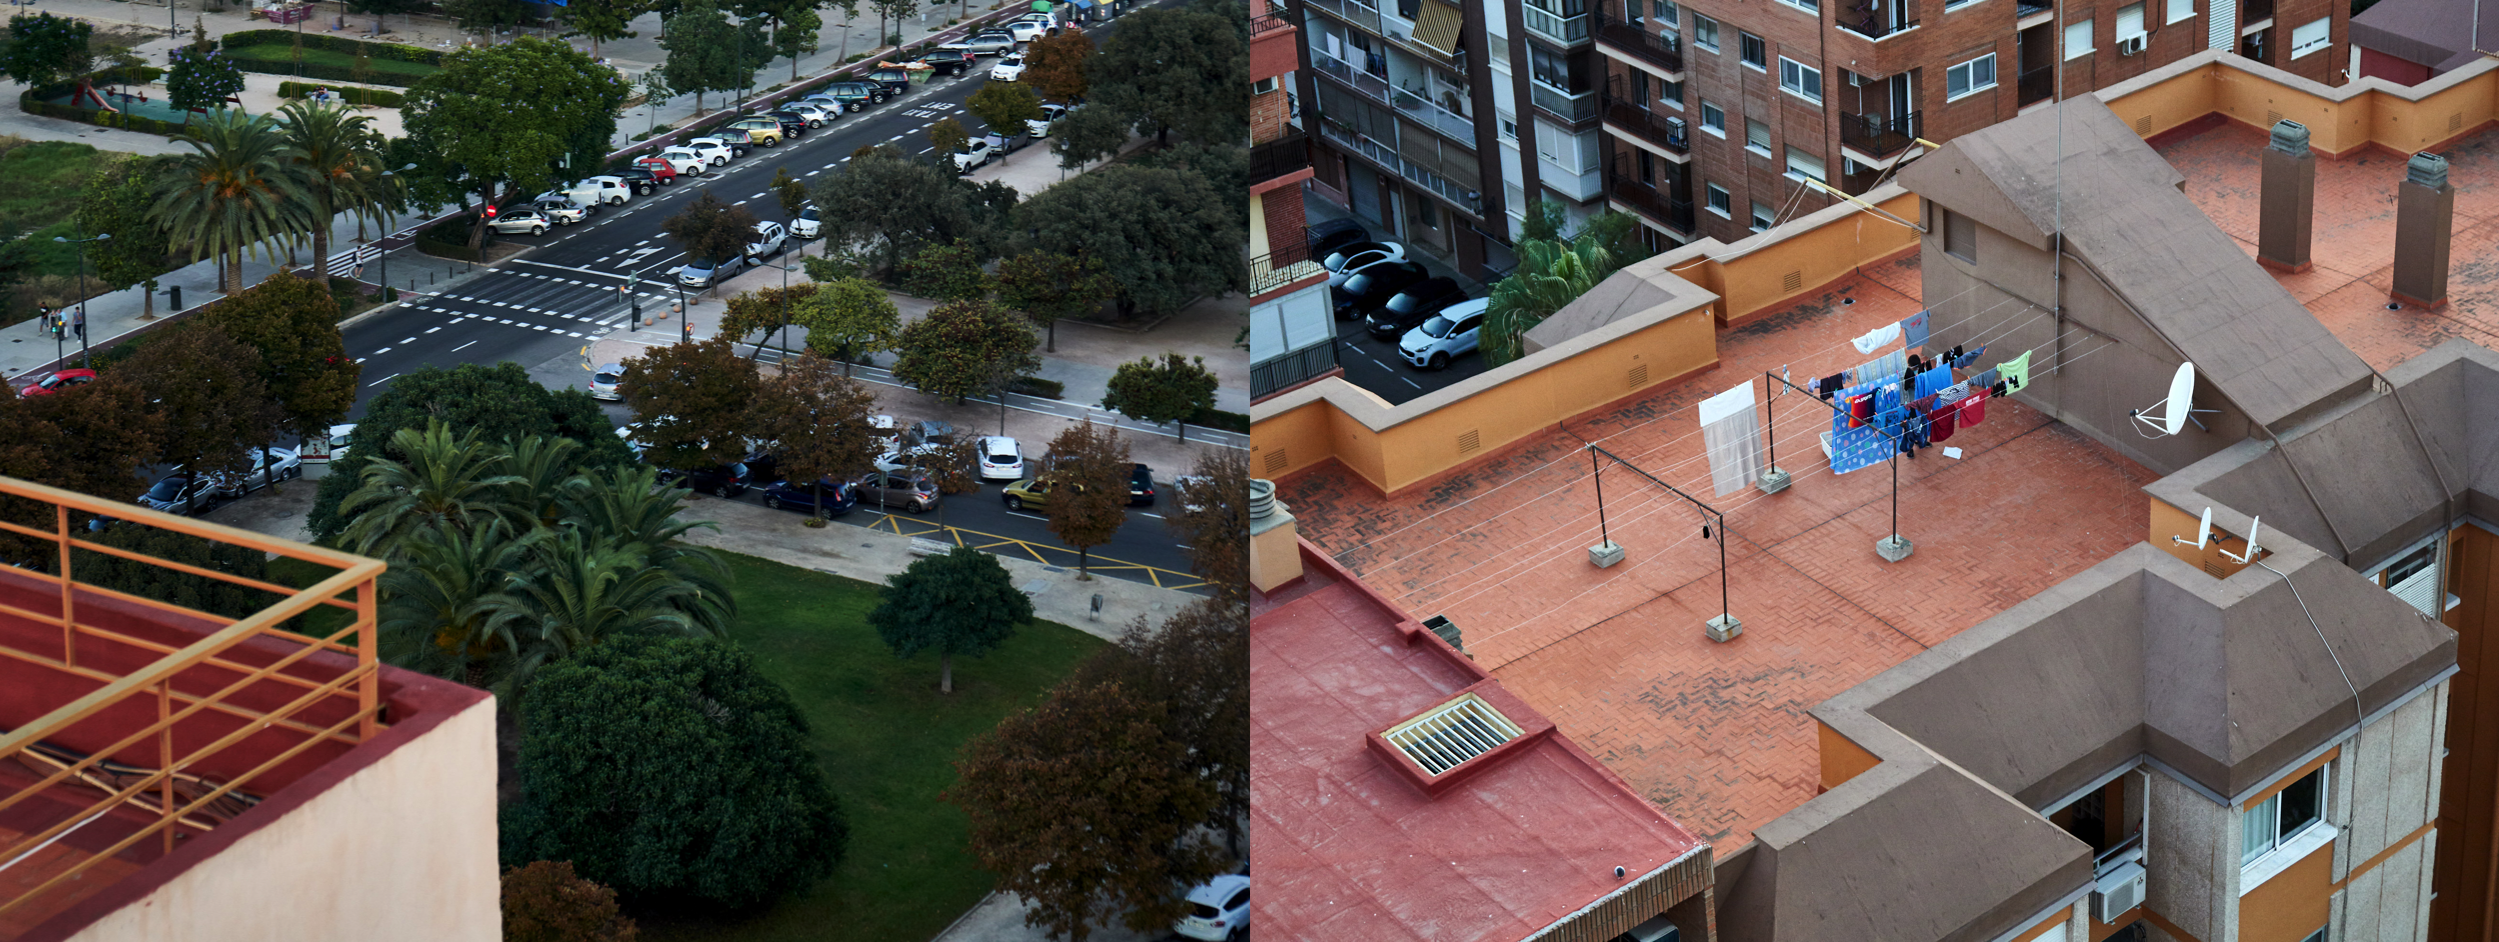 From our high building you can even look down on other roofs